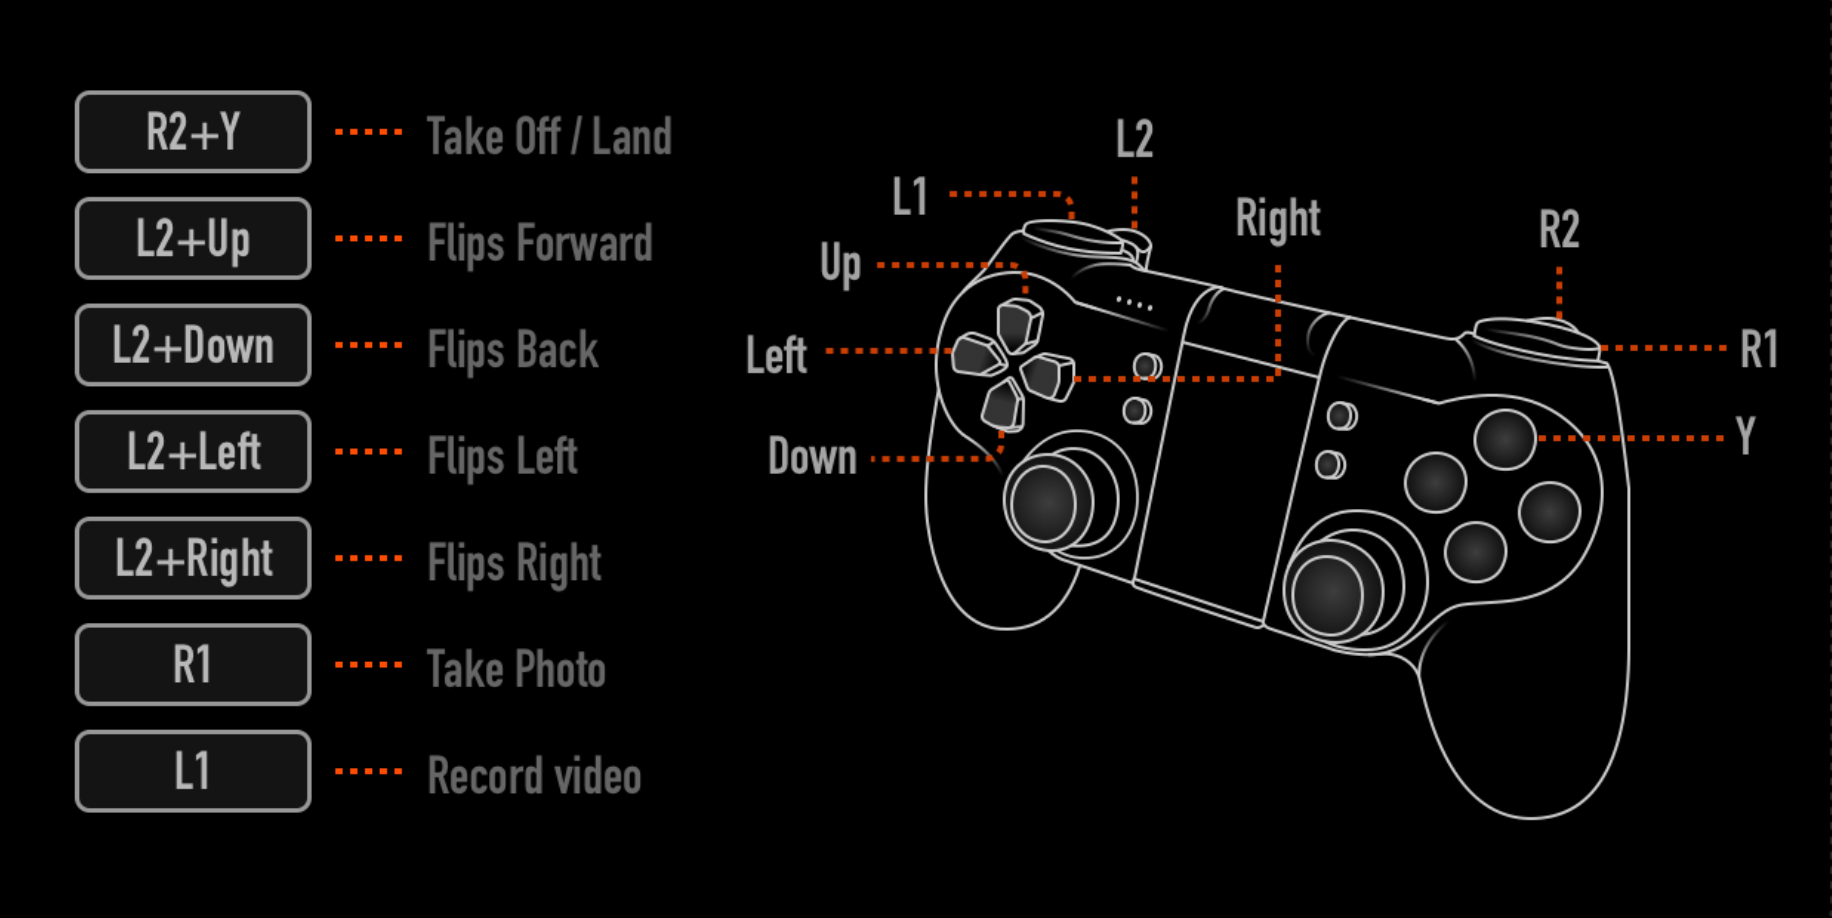 How to connect a GameSir T1d joystick to a RYZE DJI Tello